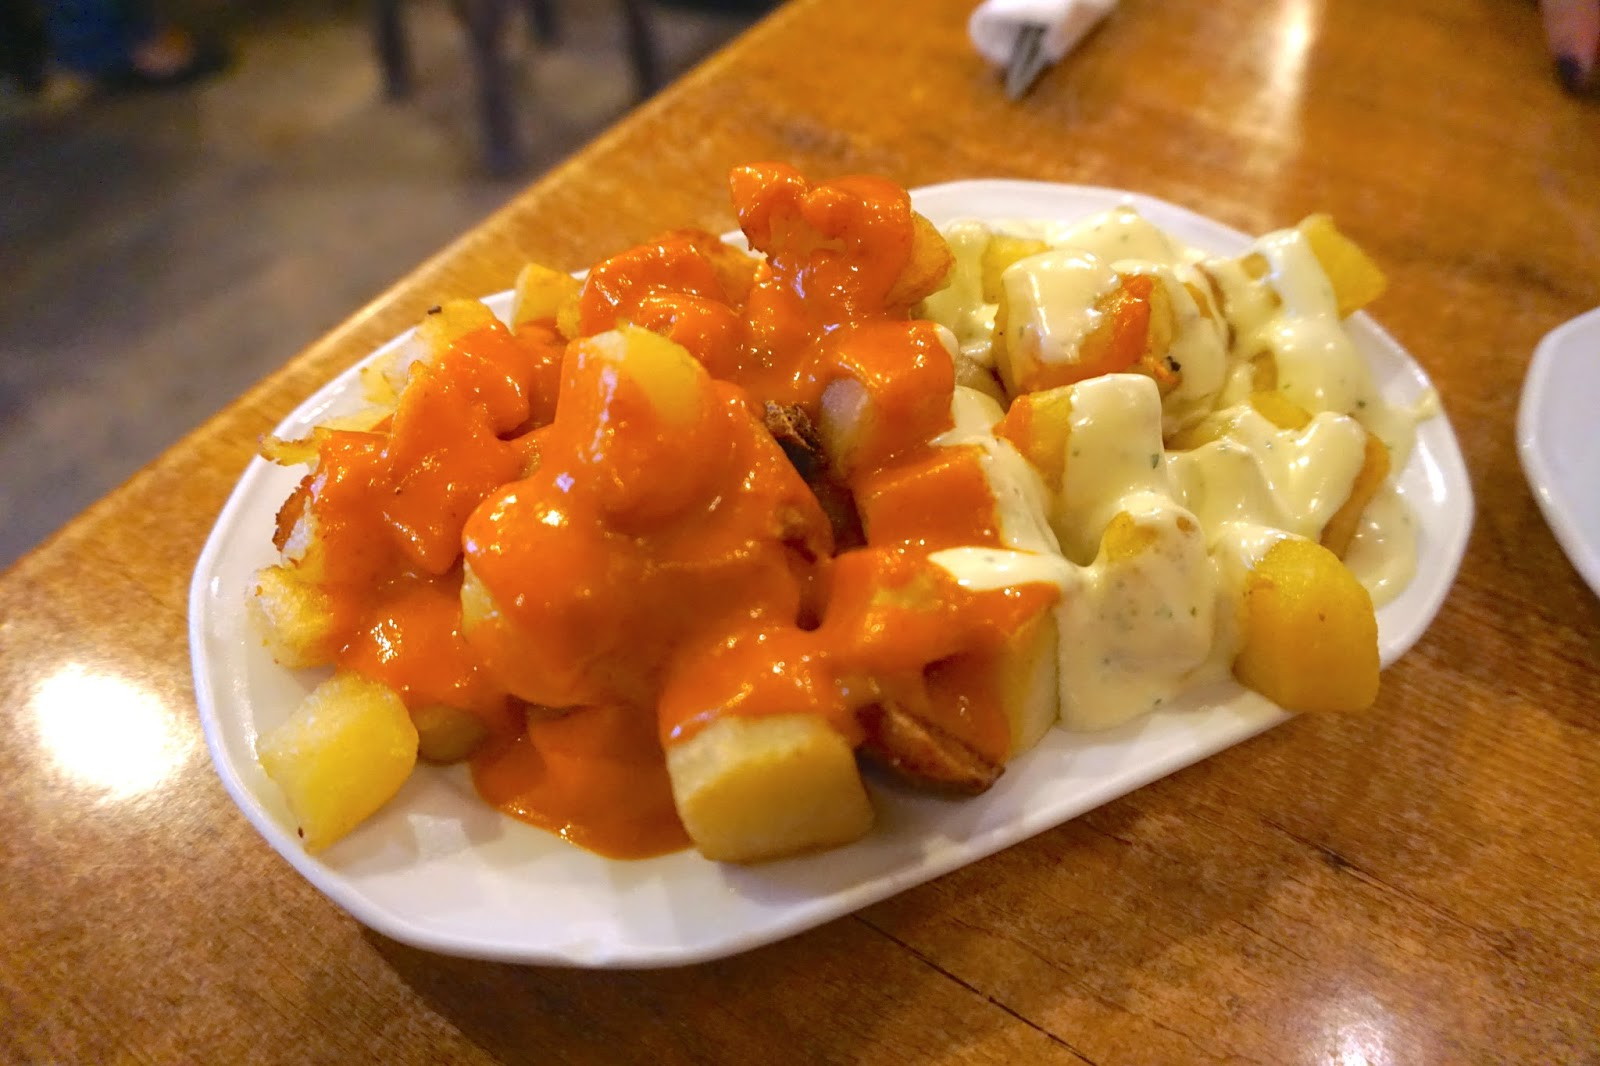 Patatas Bravas at a tapas restaurant with patatas bravas sauce and mayo